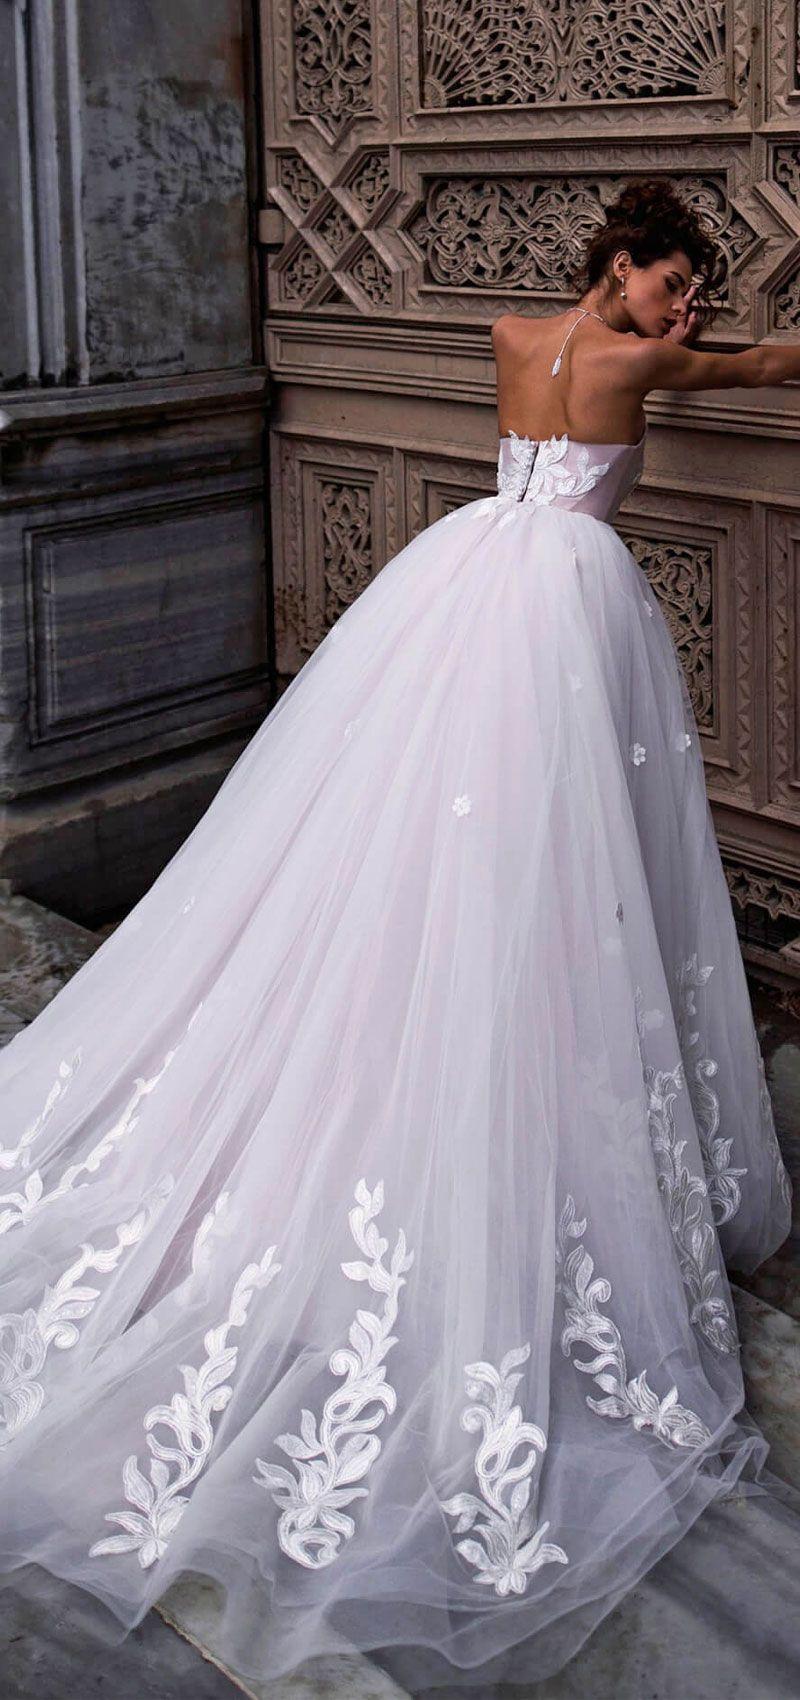 Halter neck tulle skirt ball gown wedding dress #wedding #weddingdress #bridedress #weddinggown